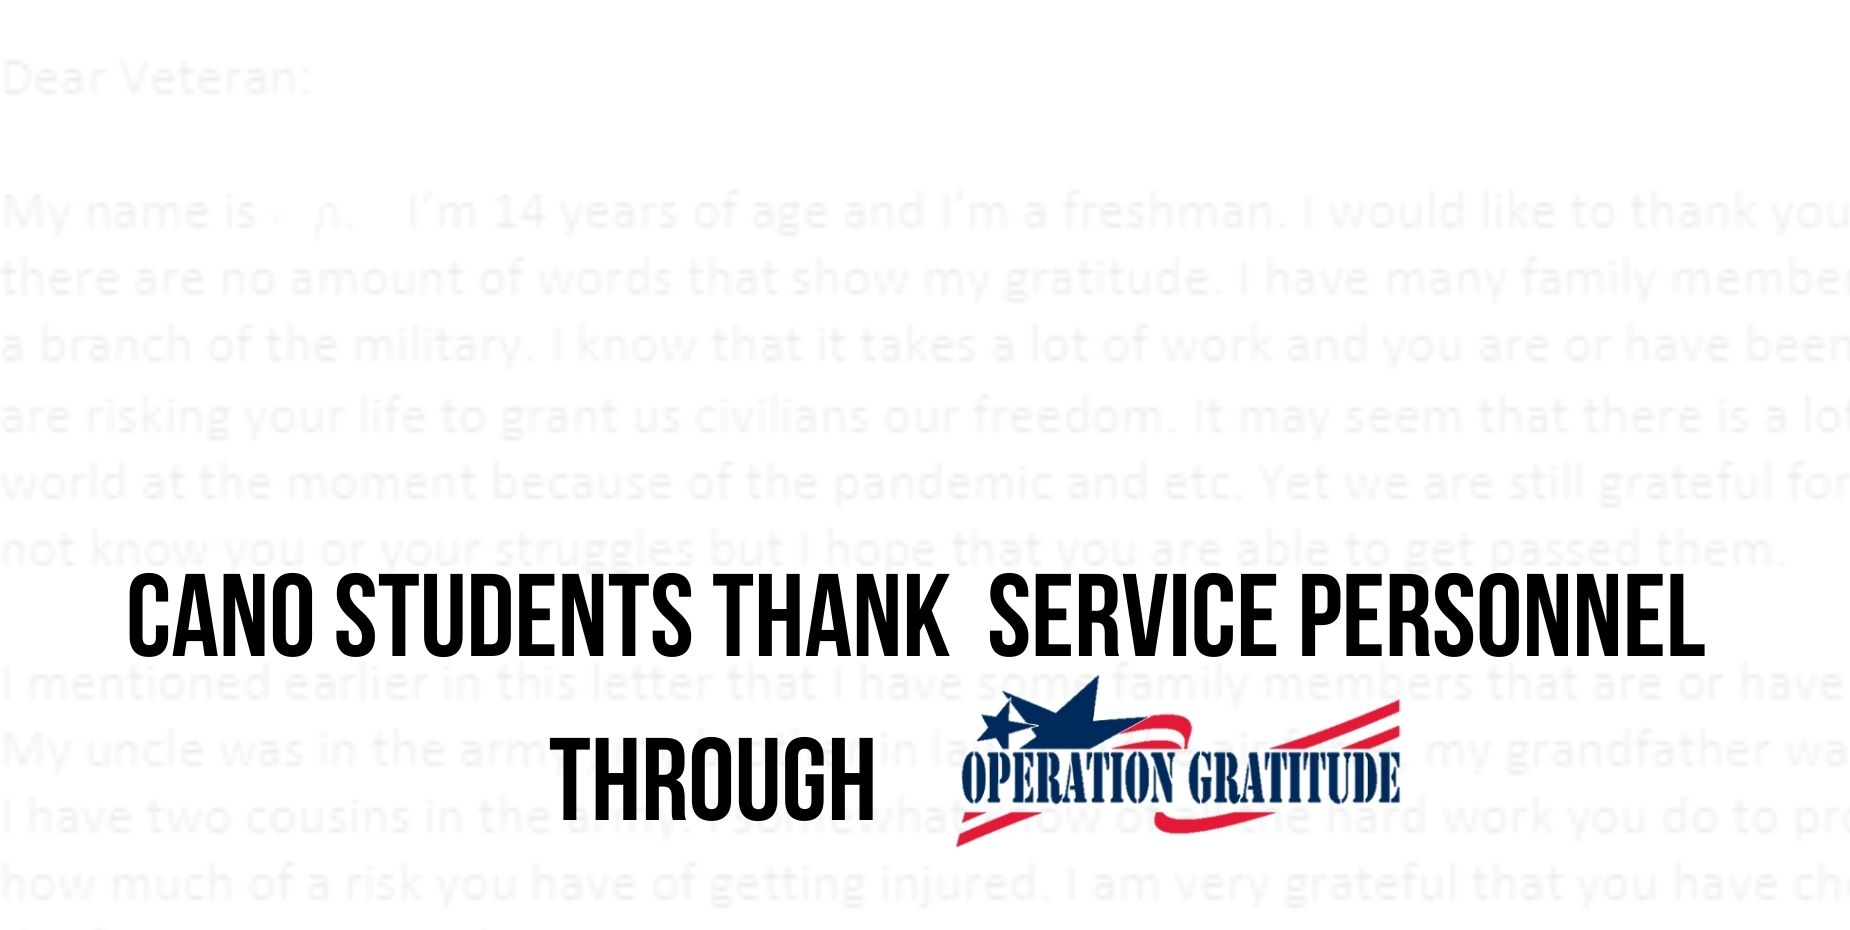 Cano students thank service personnel through Operation Gratitude